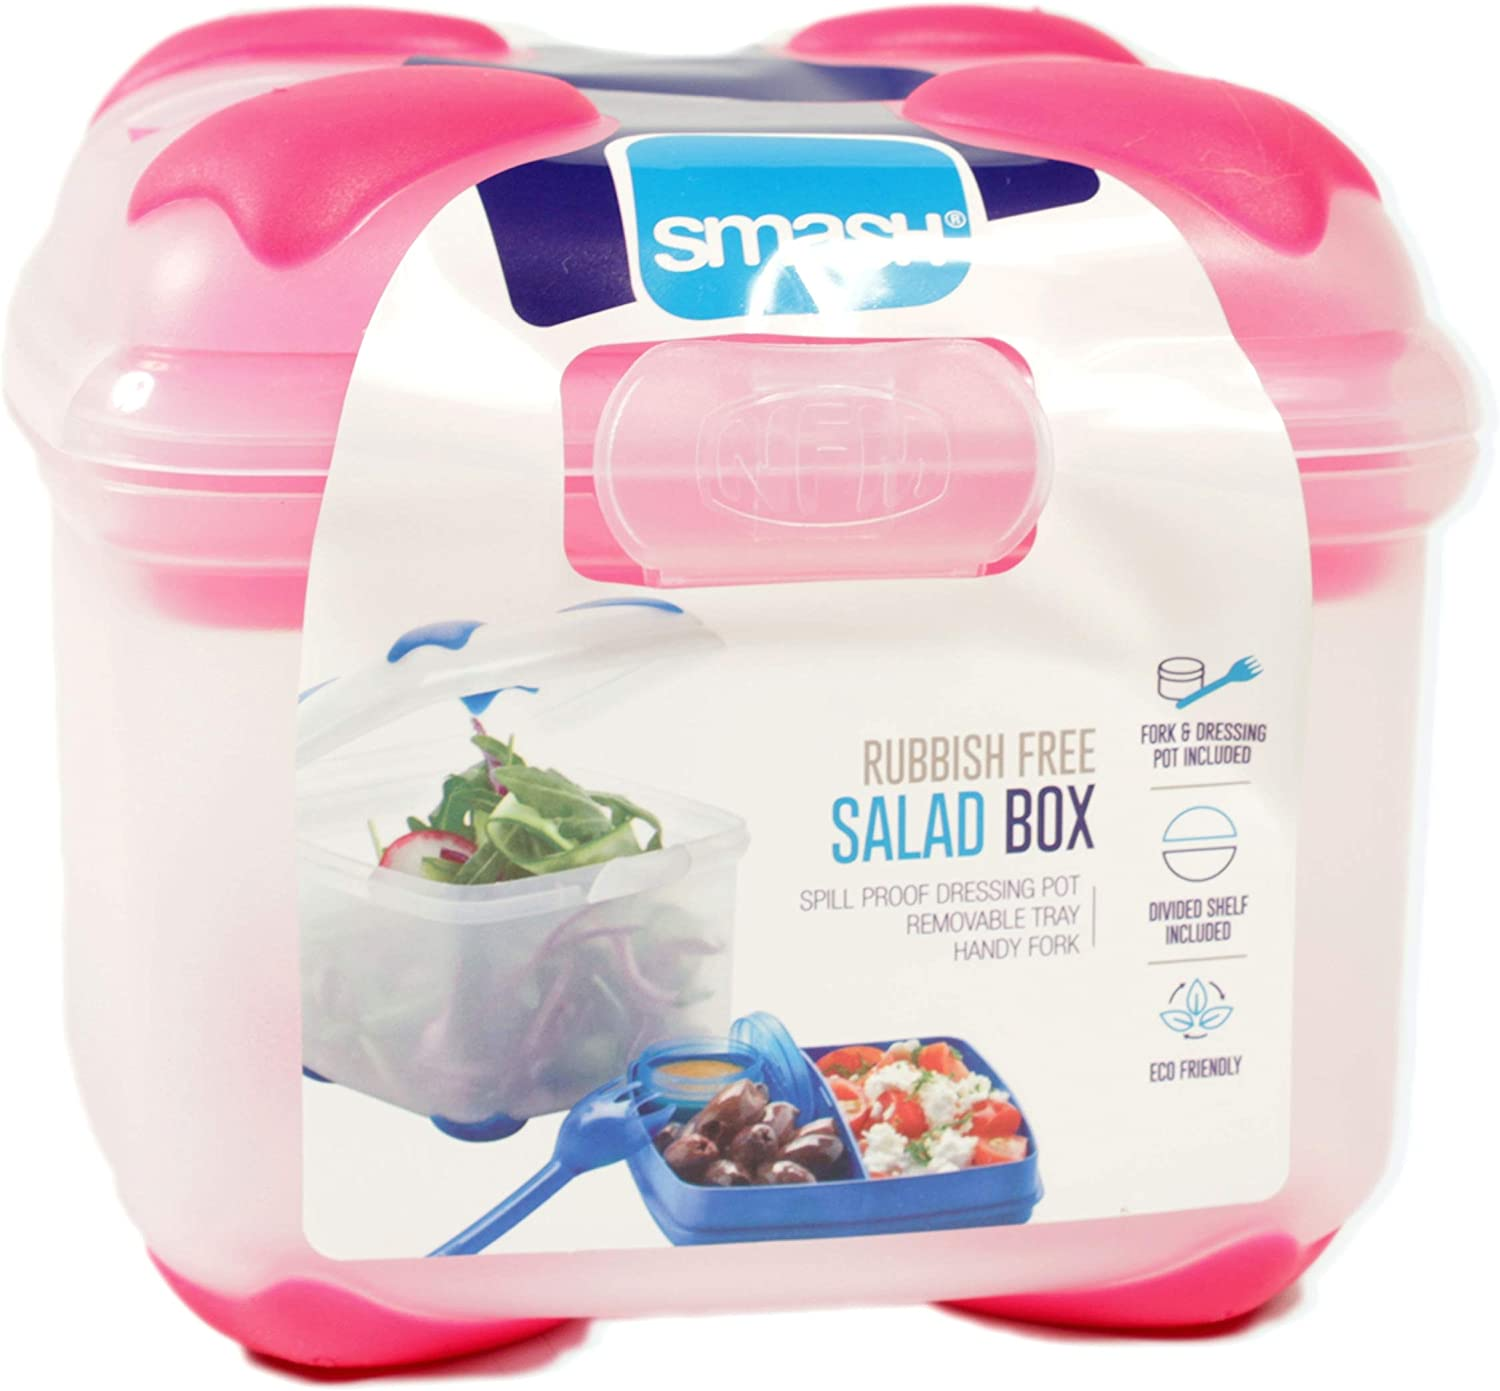 Nude Food Movers by Smash Food Container SALAD BOX, One, Blue | pink | green | black